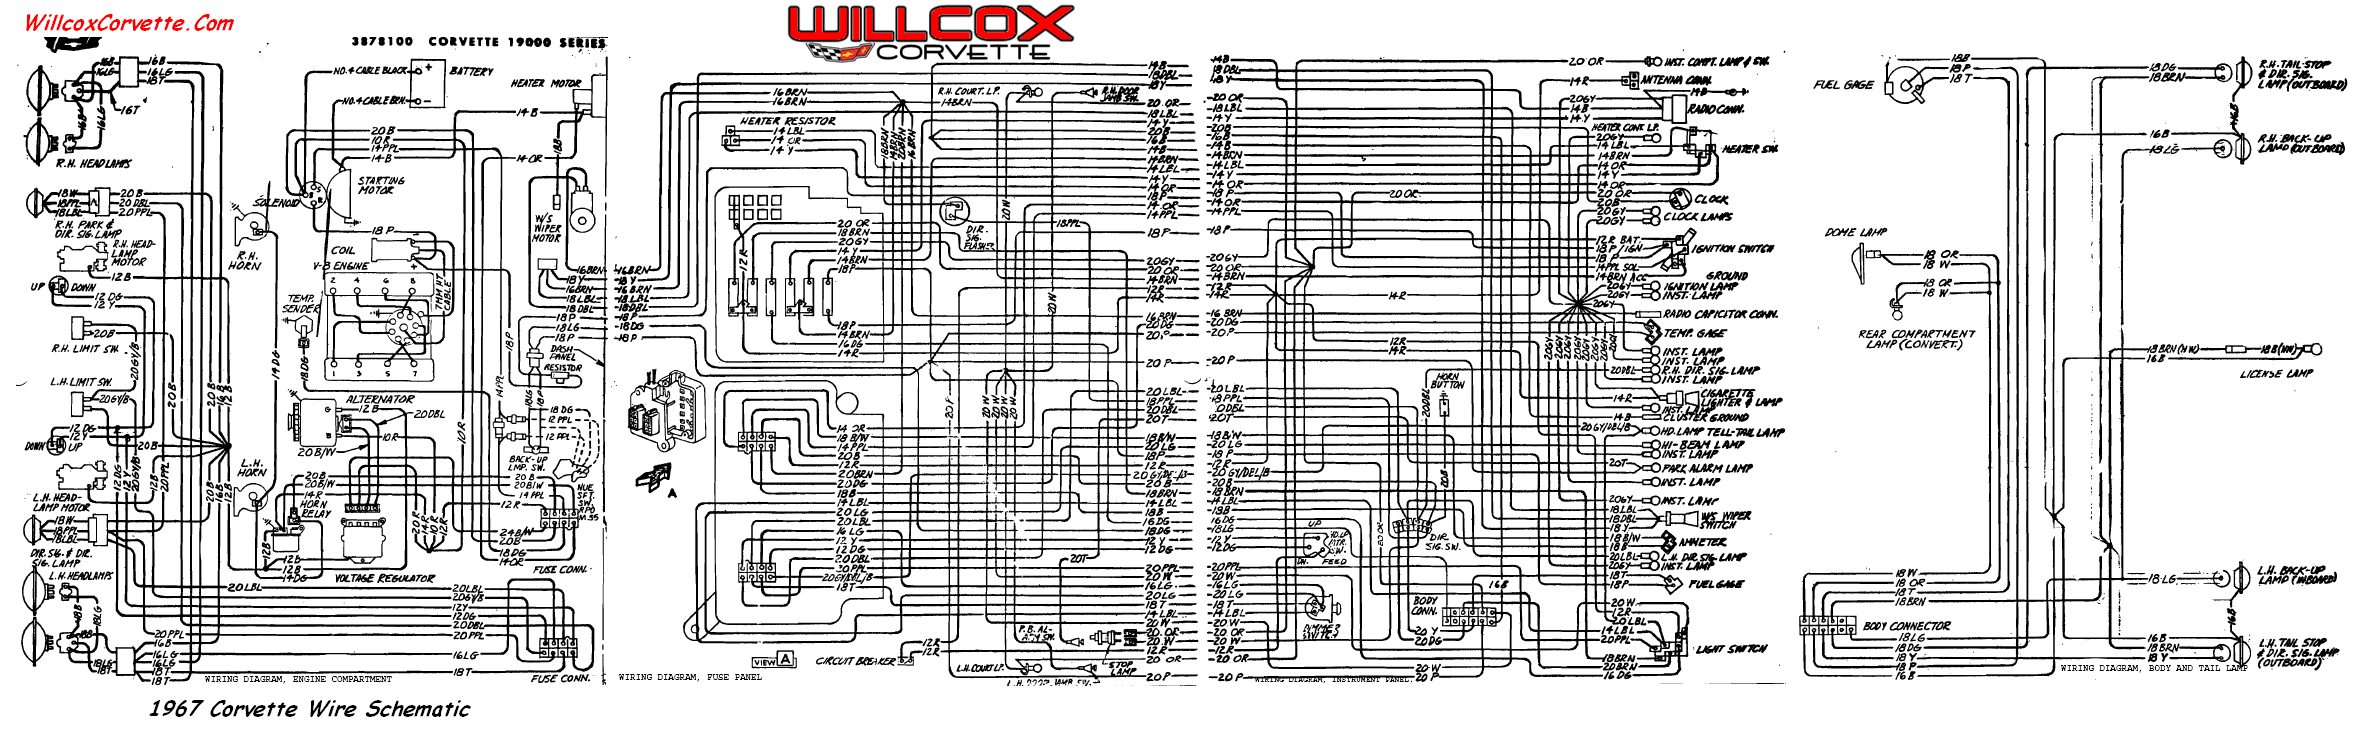 67 wire schematic for tracing wires 1967 corvette wiring diagram (tracer schematic) willcox corvette corvette wiring schematic at soozxer.org